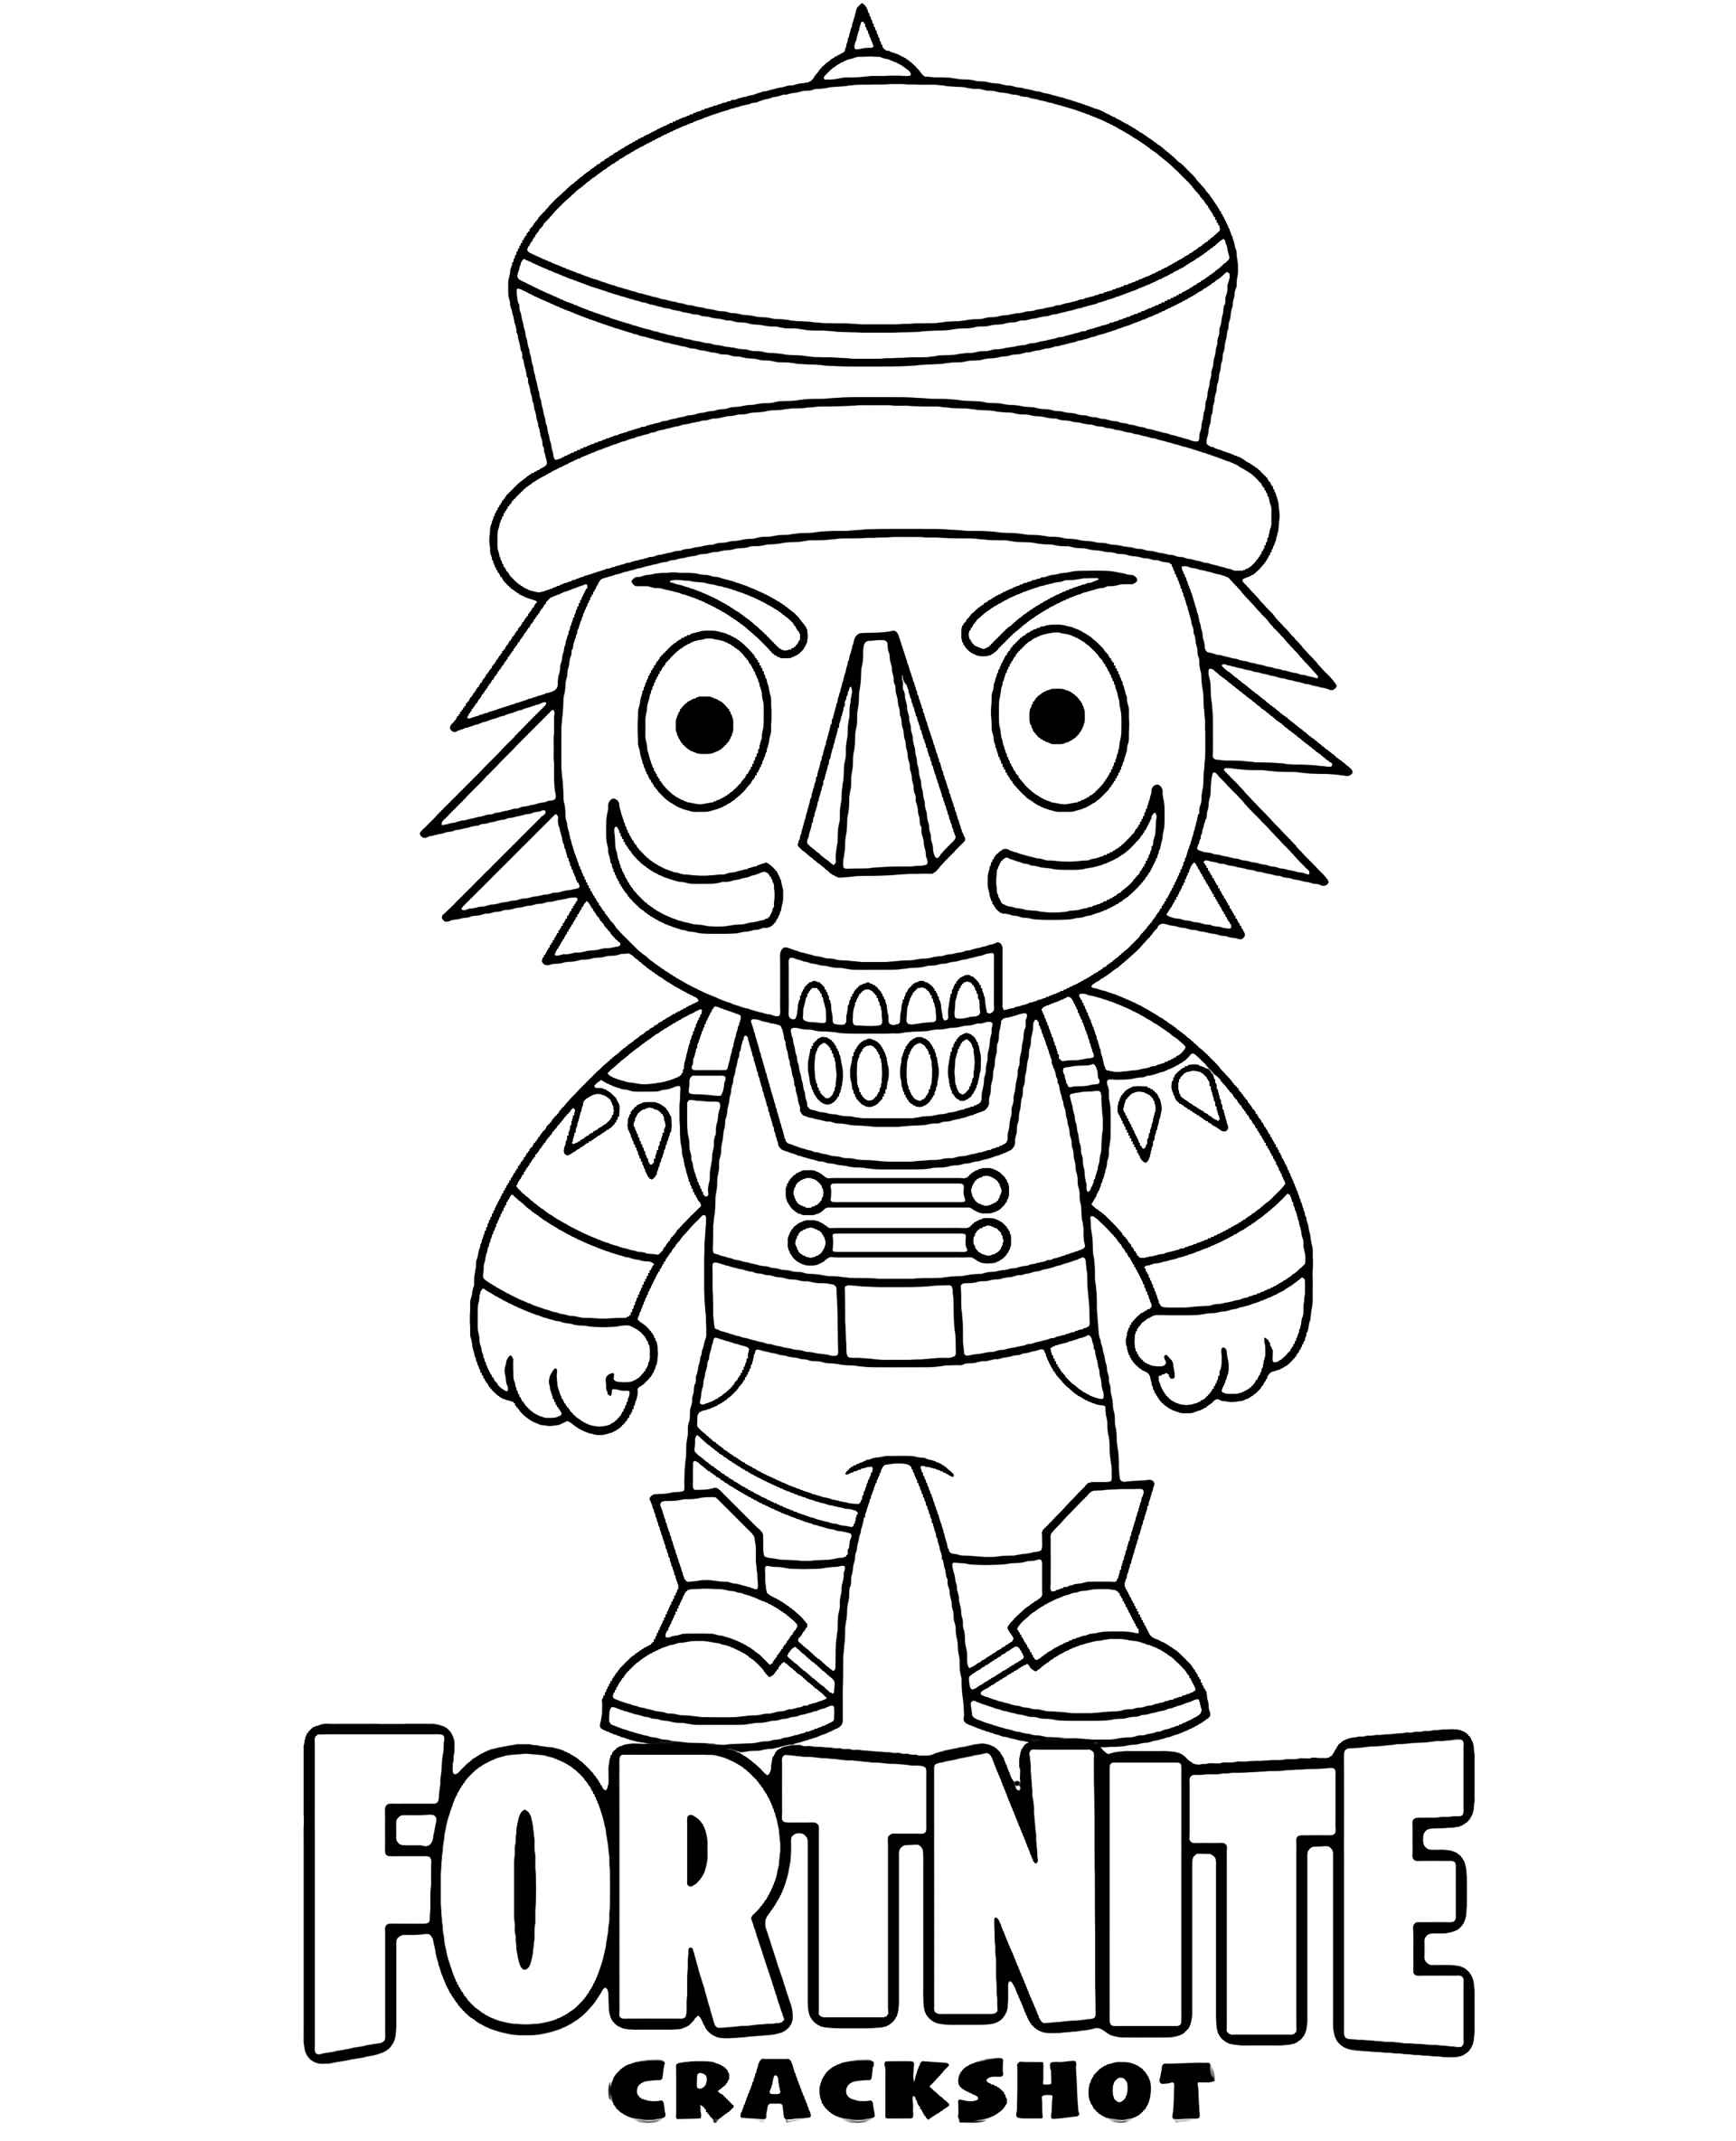 Coloring Page The Crackshot Chibi Skin From The Game Fortnite